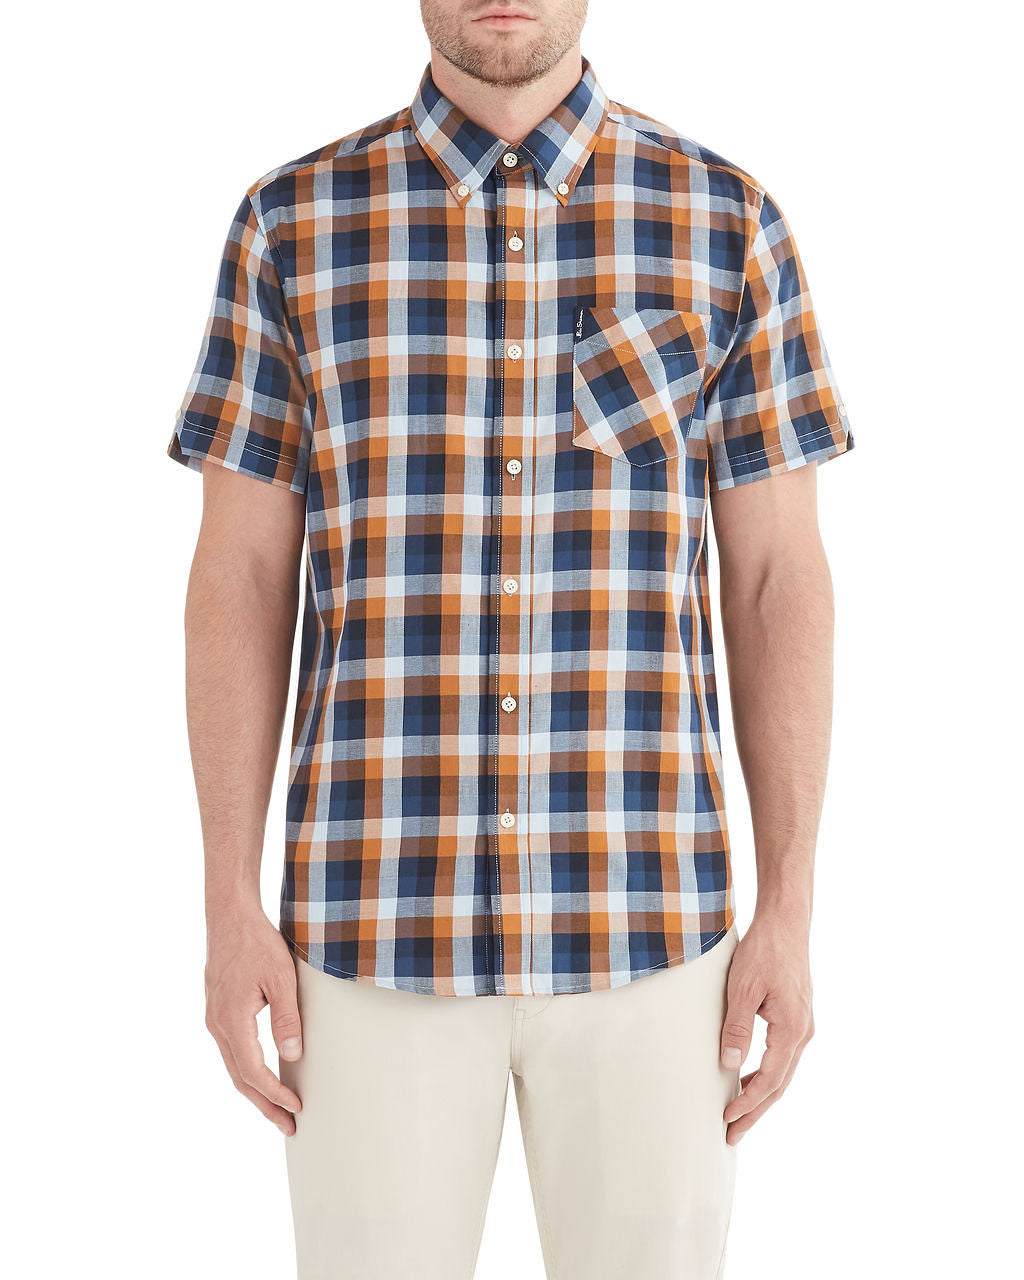 Short-Sleeve Diamond Twill Check Shirt - Mustard